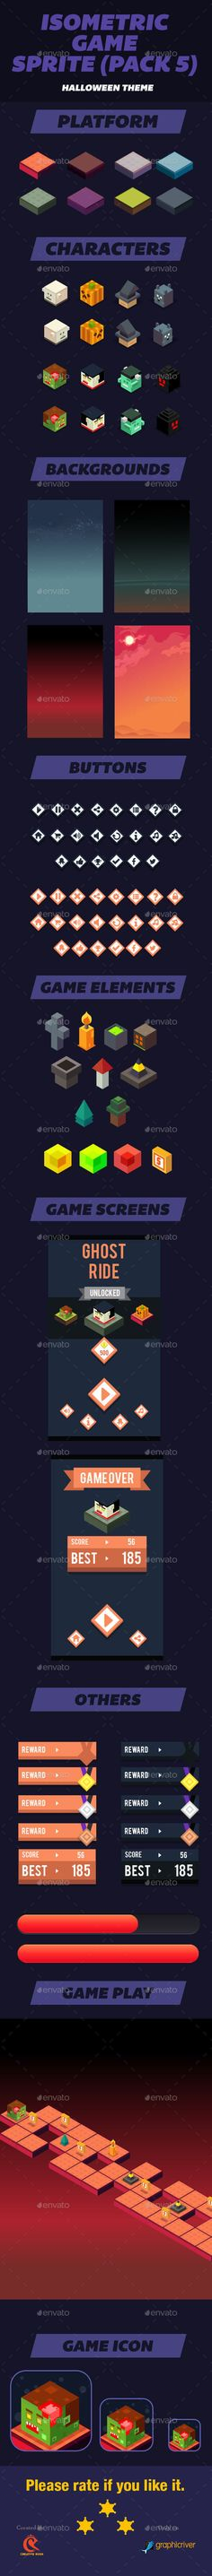 Isometric Game Assets Halloween Download here: https://graphicriver.net/item/isometric-game-assets-halloween/15091405?ref=KlitVogli